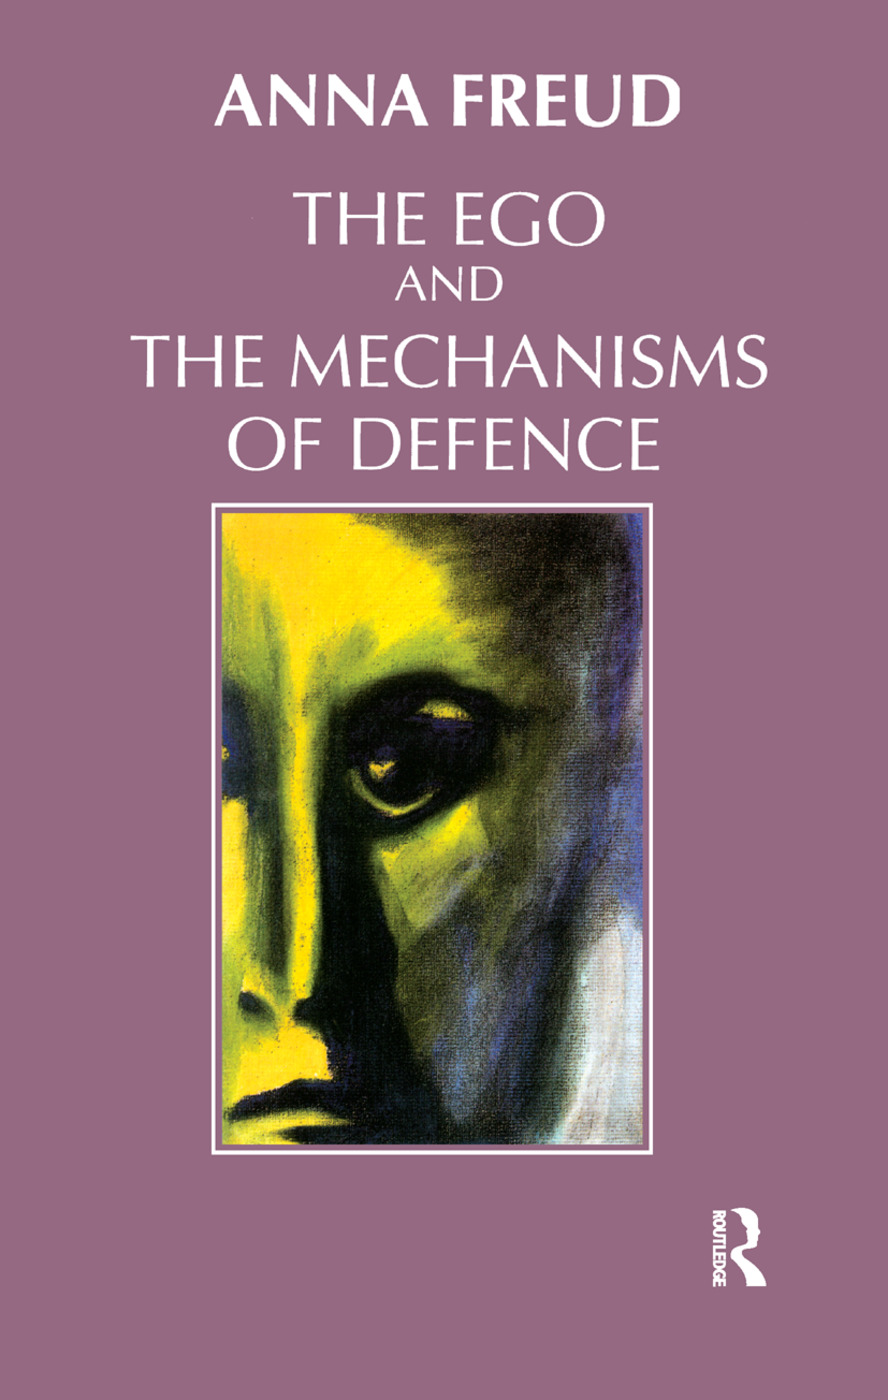 The Ego And The Mechanisms Of Defence Taylor Francis Group